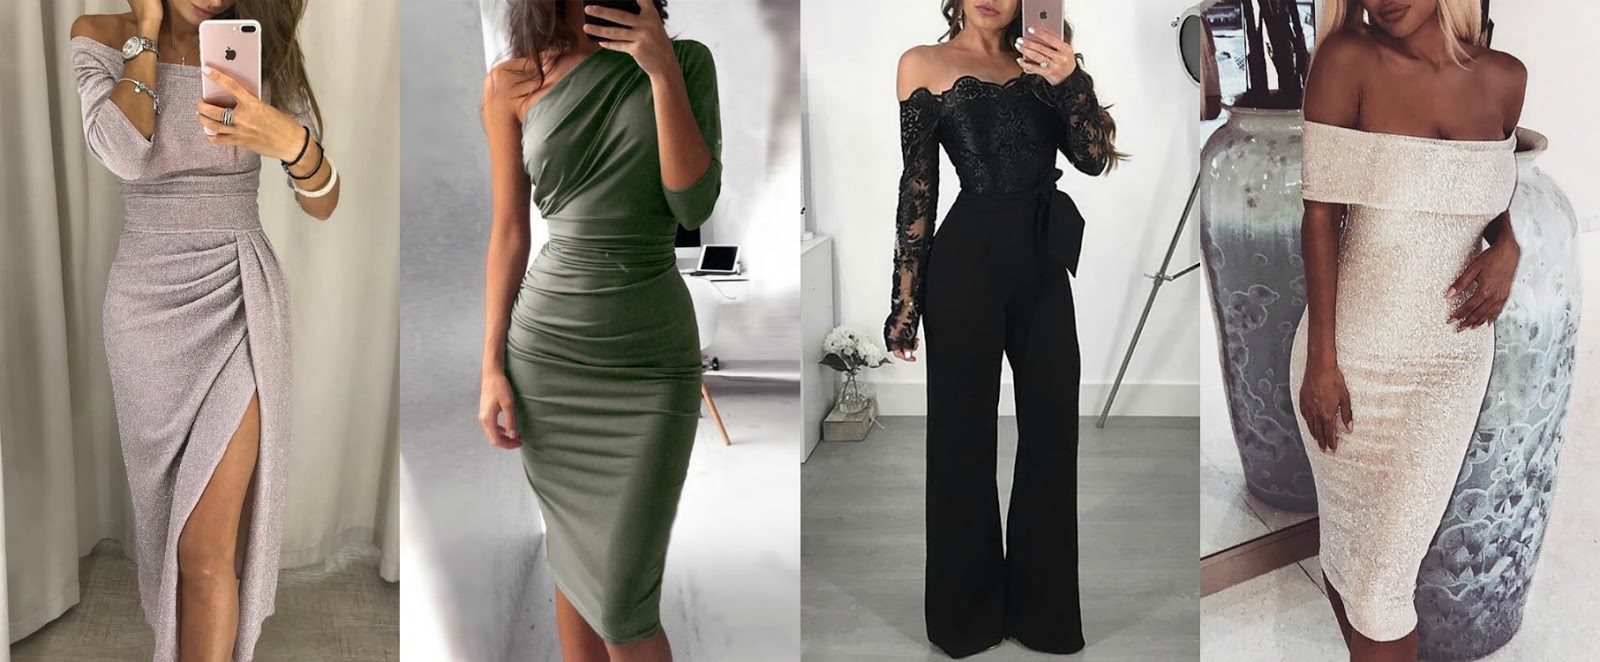 bd6a6686 ChicMe Dresses | Christmas Night Out - Jenna Suth